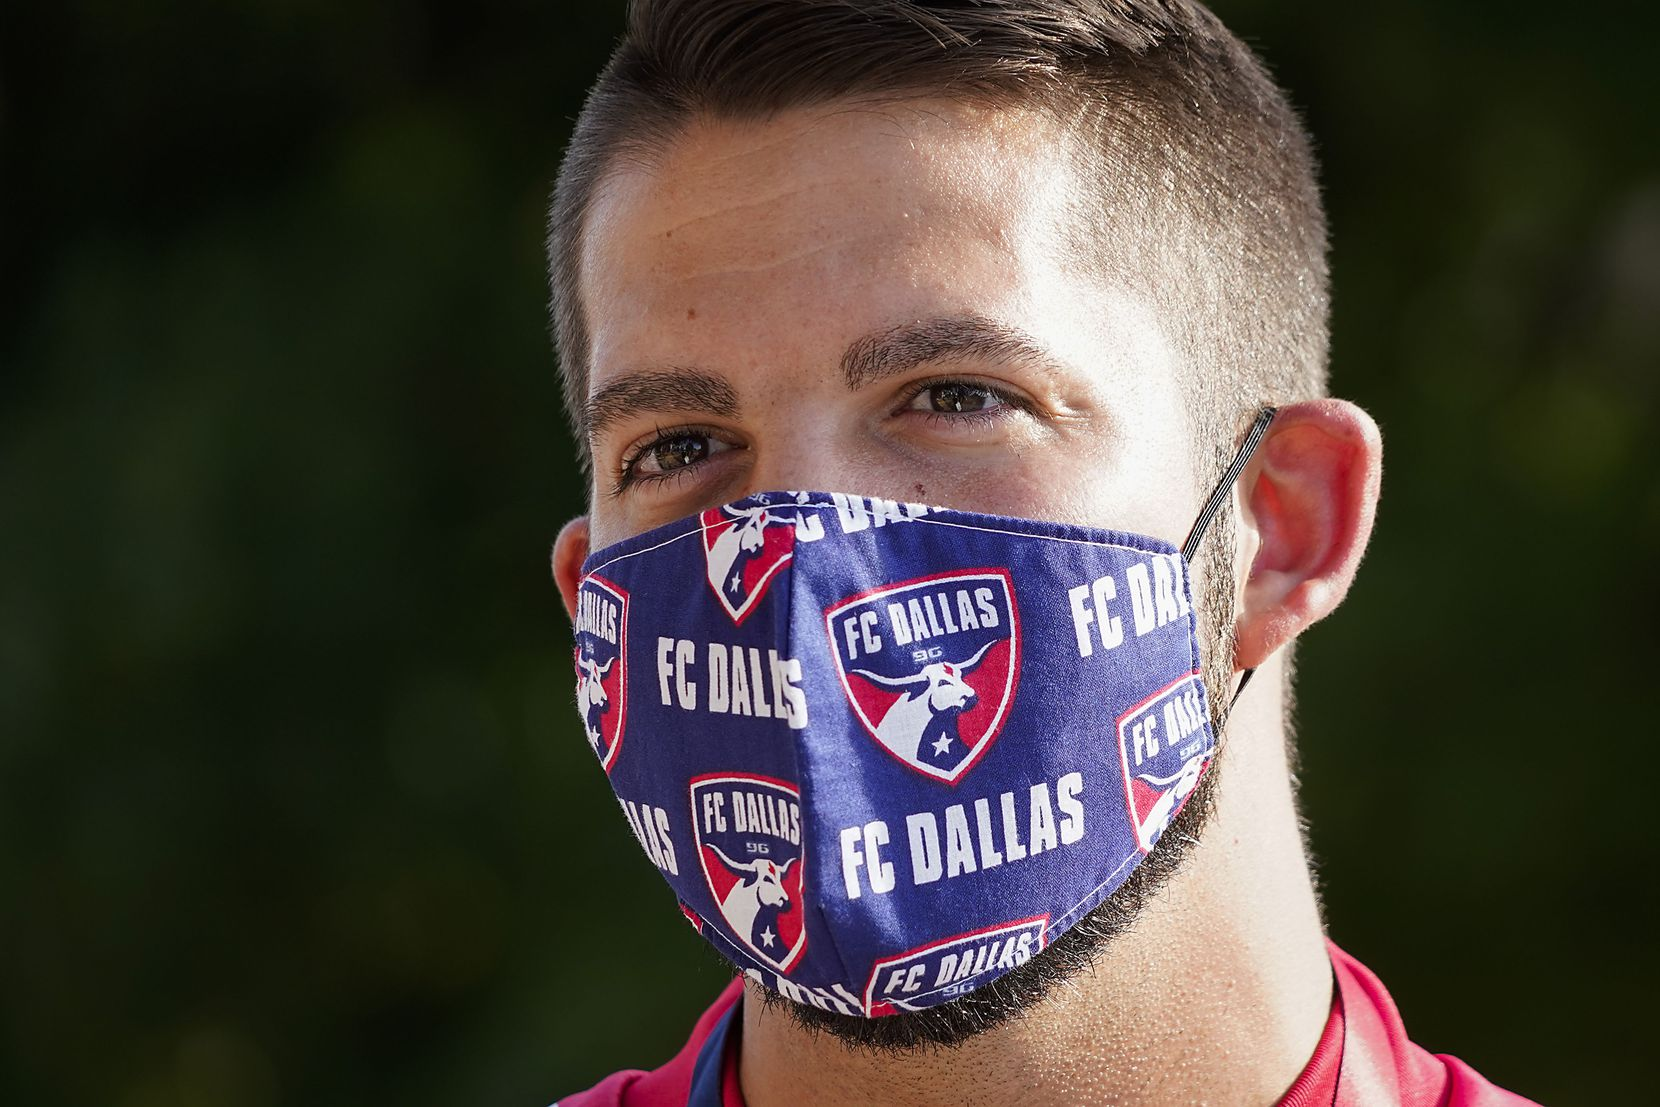 Jeff Files wears a FC Dallas face mask as he waits to enter the West Gate before an MLS soccer game at Toyota Stadium on Wednesday, Aug. 12, 2020, in Frisco, Texas. (Smiley N. Pool/The Dallas Morning News)